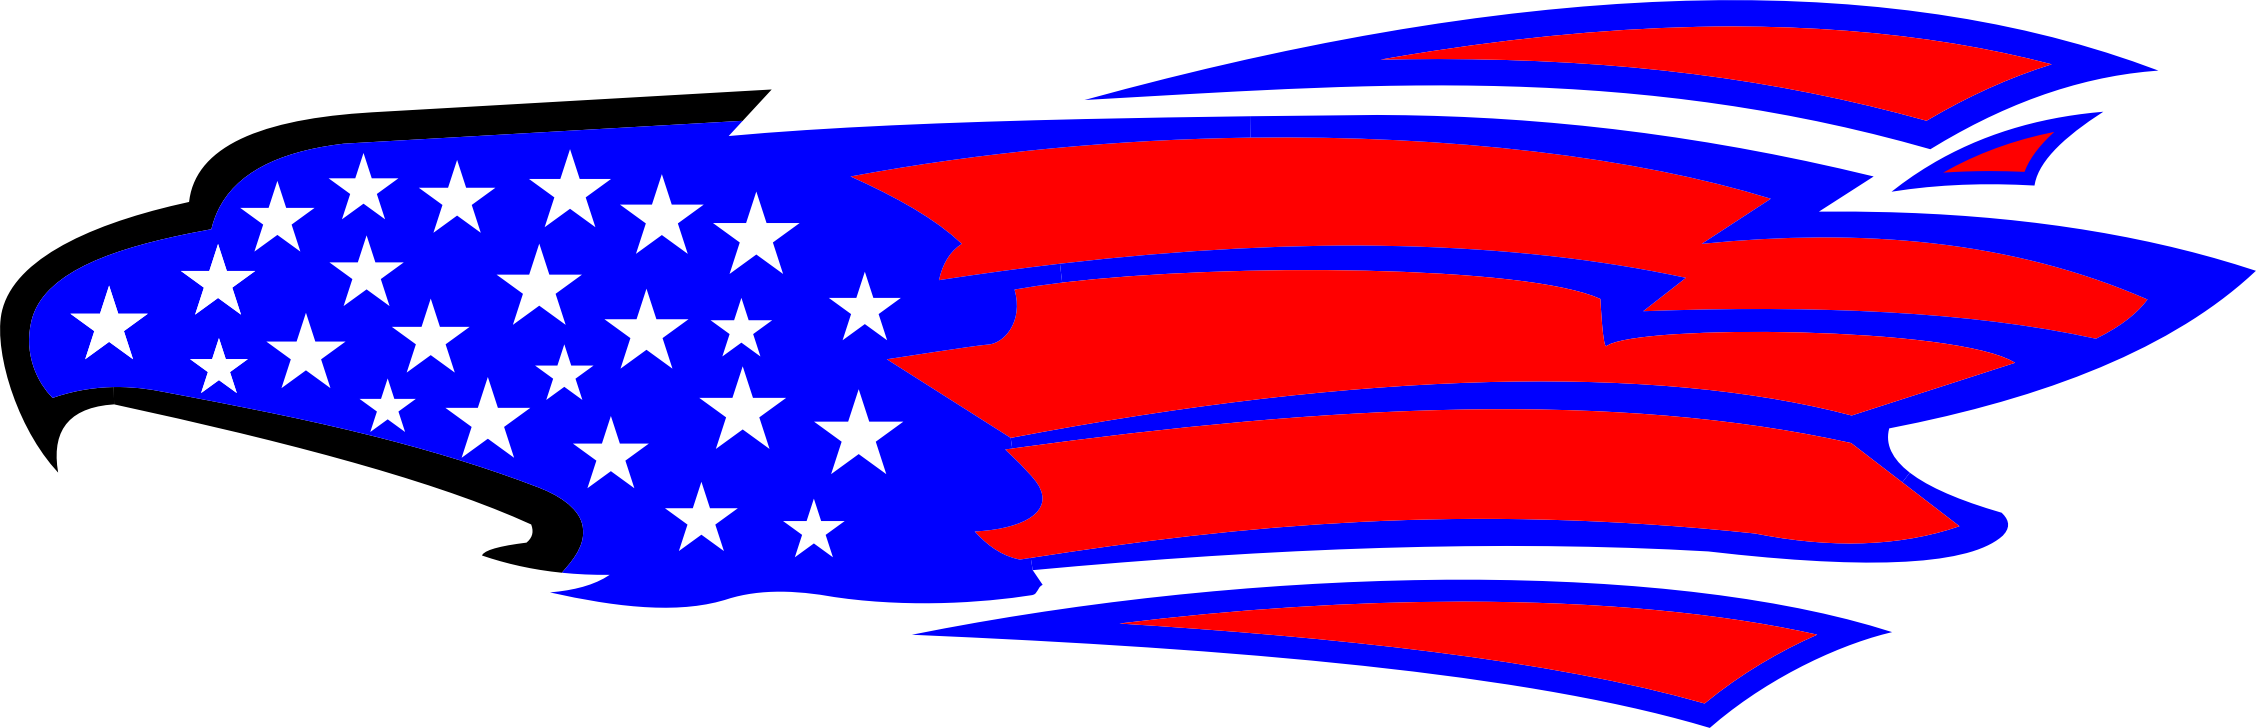 Abstract american star and flag clipart picture royalty free library Clipart - American Eagle picture royalty free library